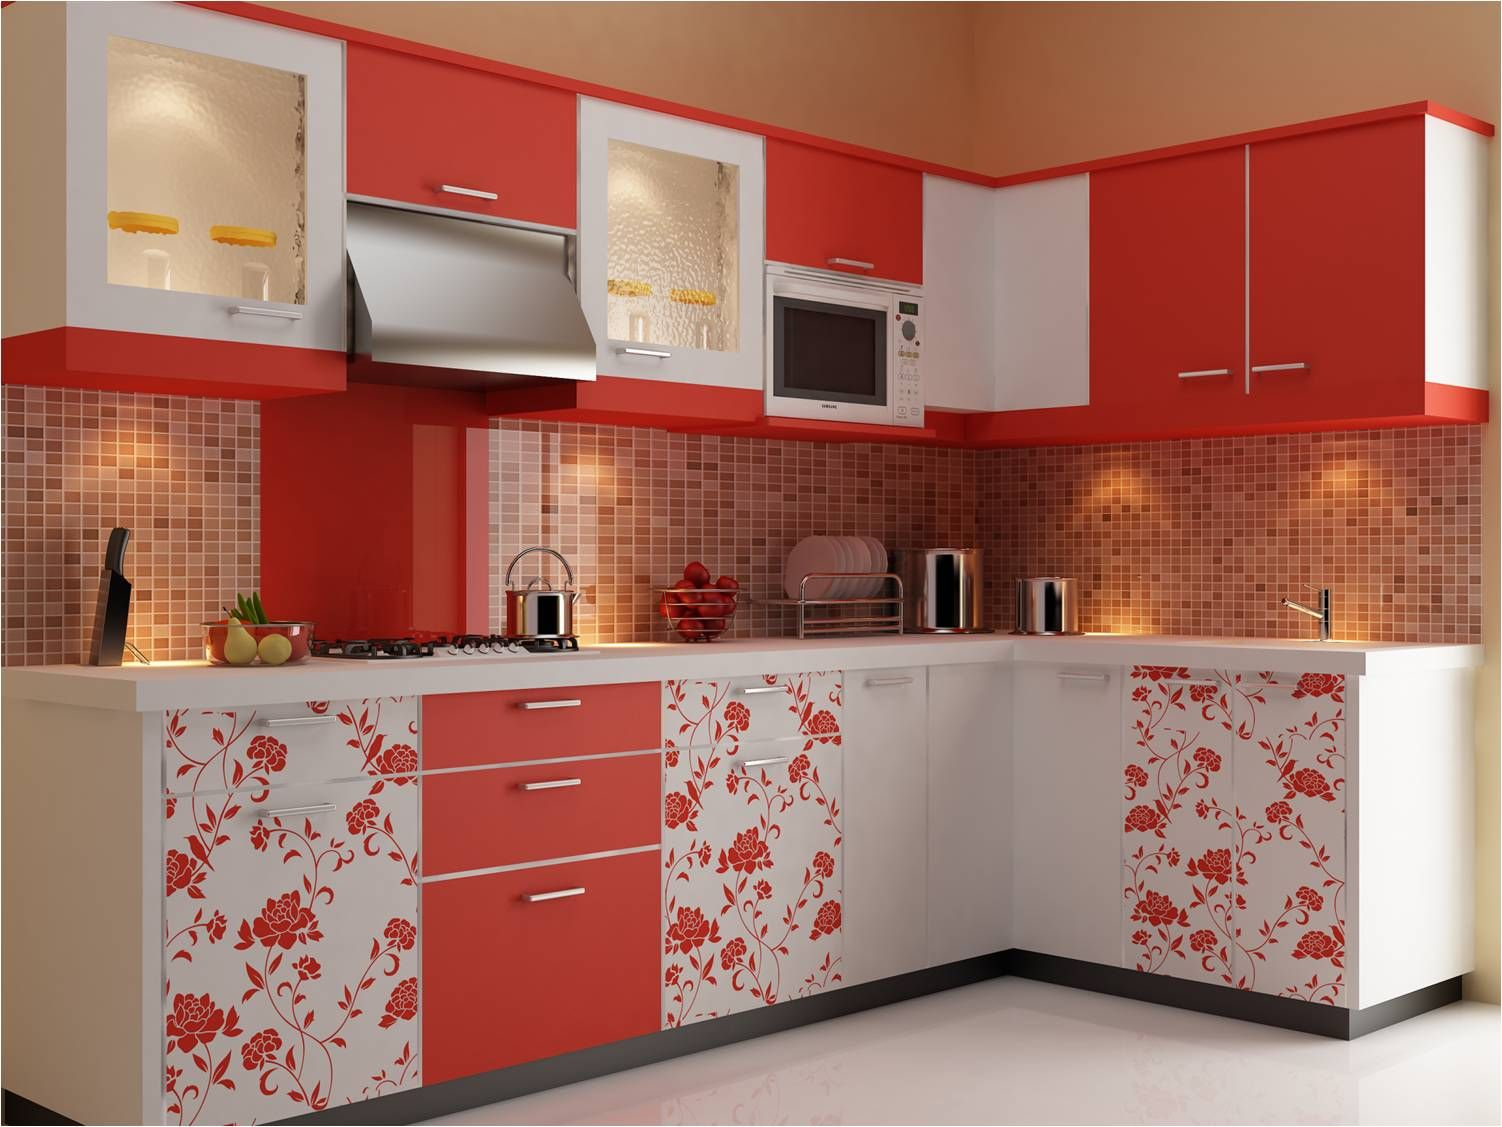 Kitchen Tiles Colour Combination 9 best tambaram modular kitchen images on pinterest | kitchen